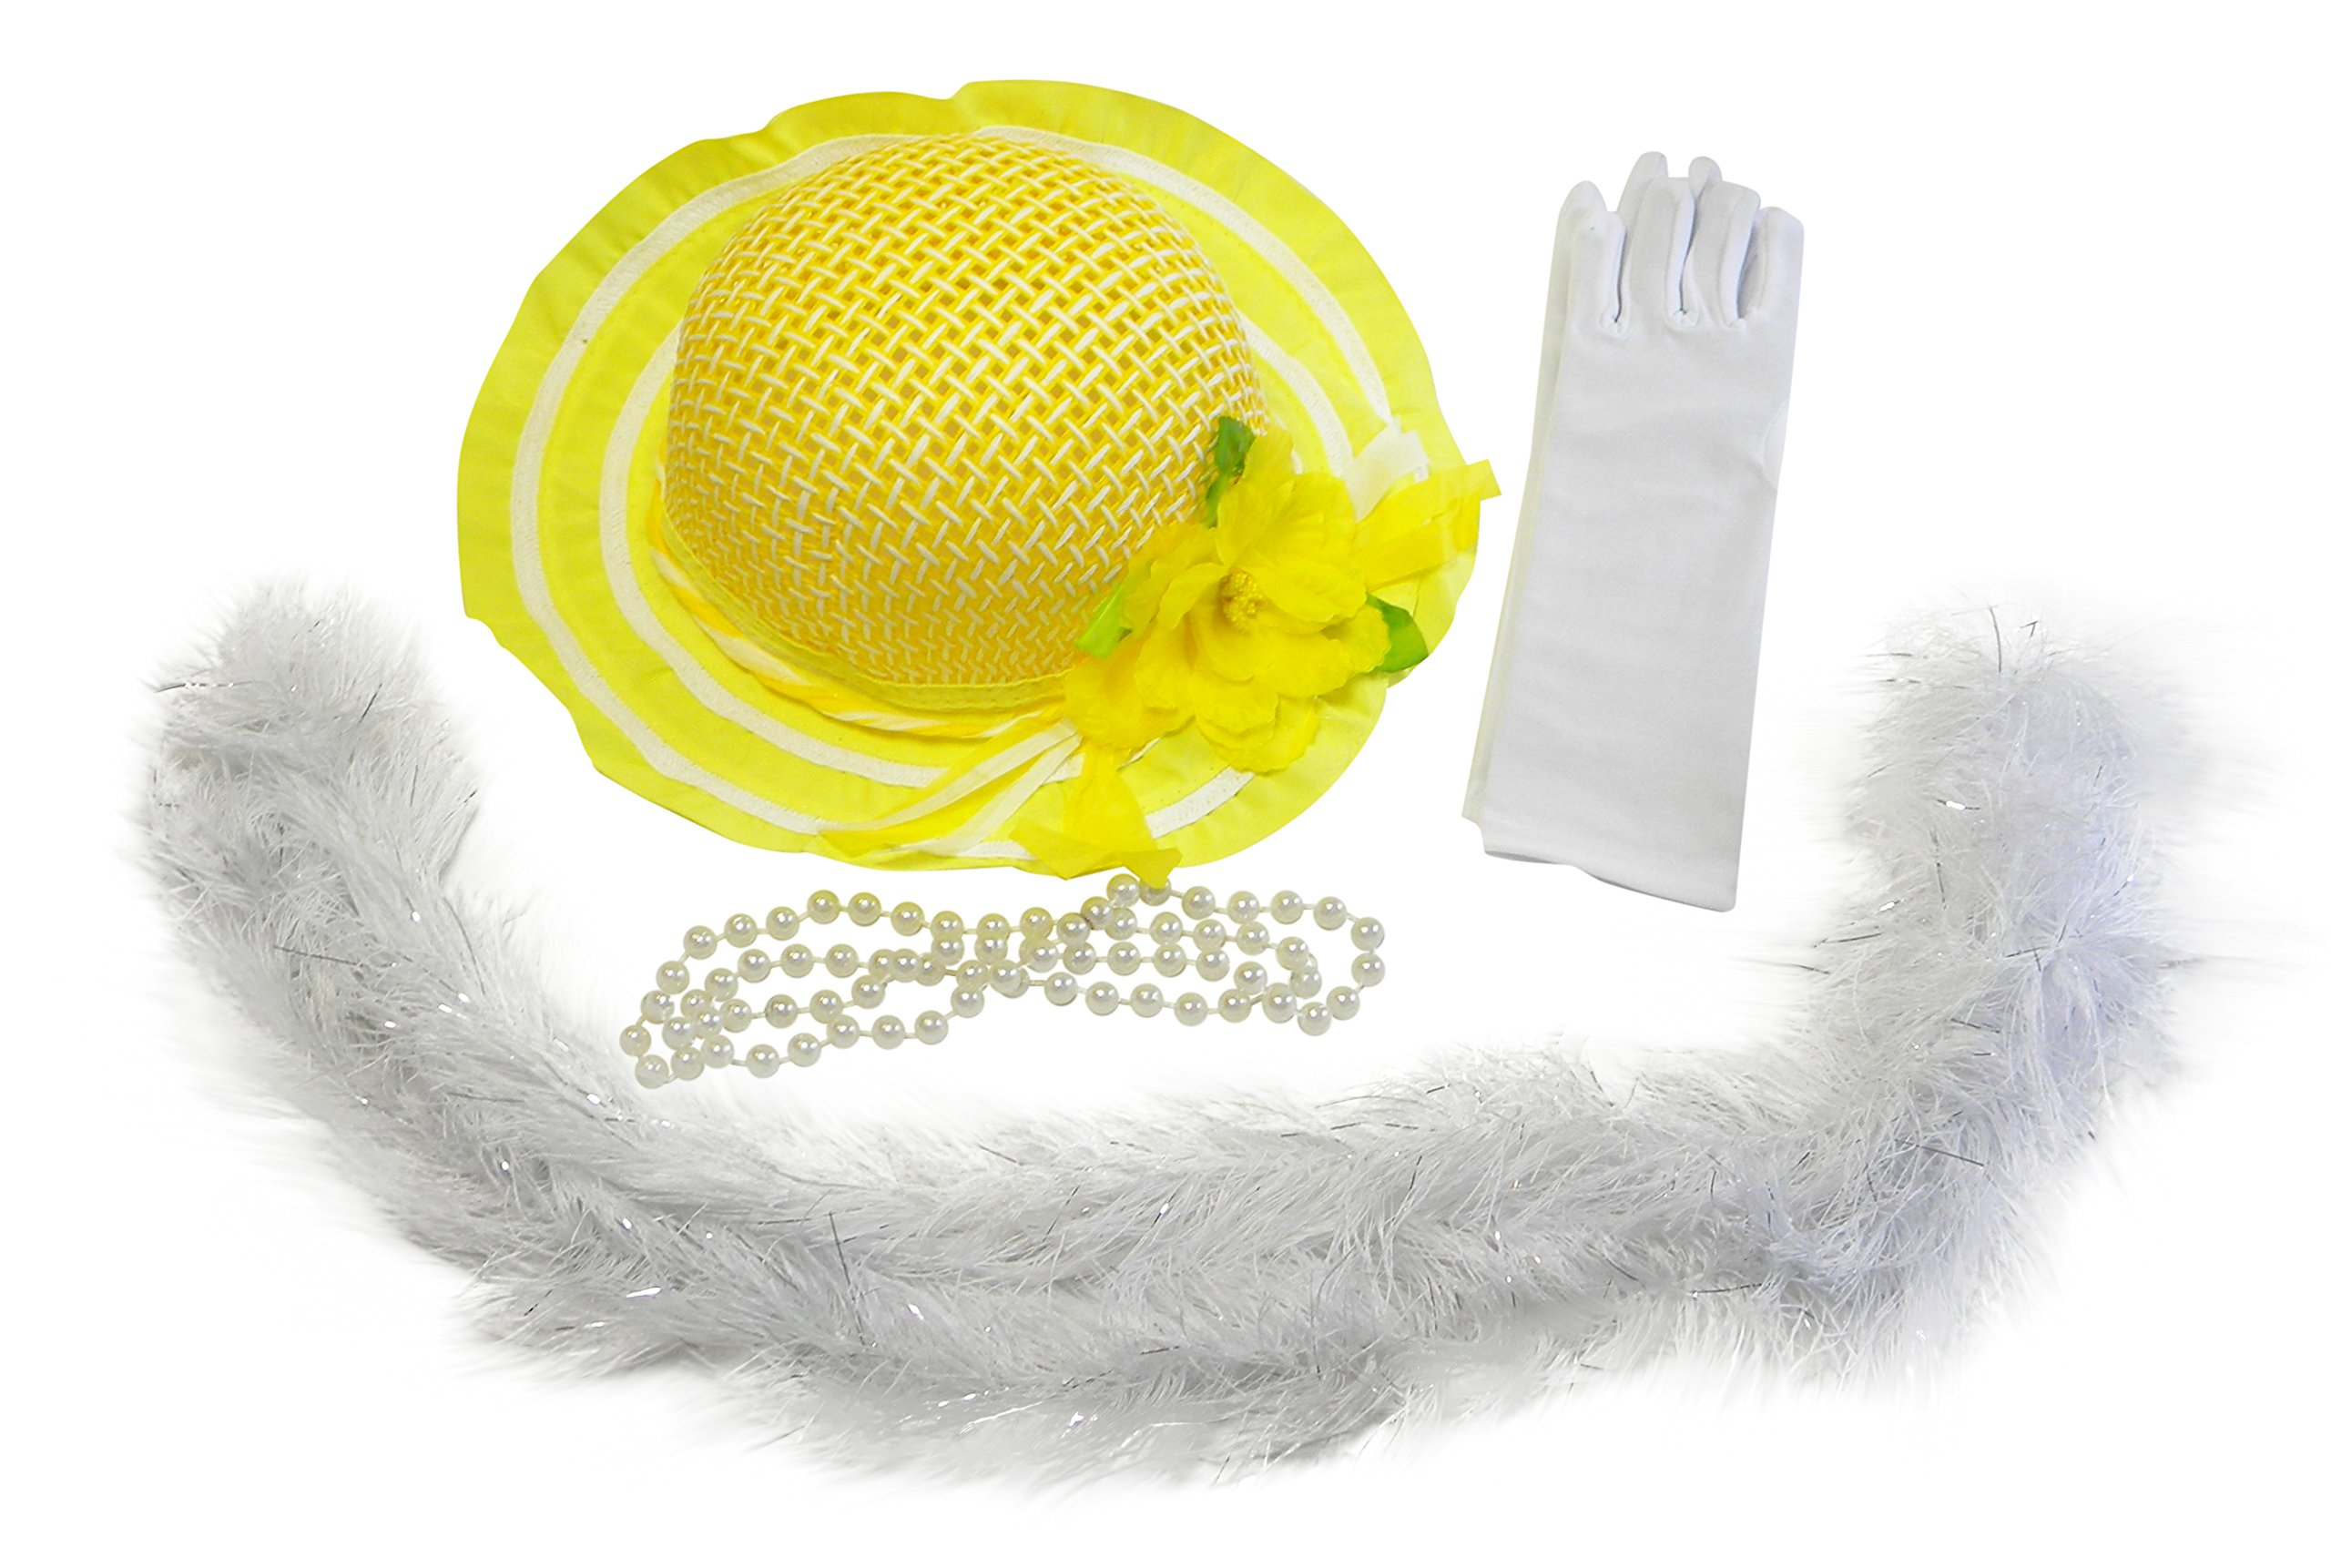 Butterfly Twinkles Girls Tea Party Dress Up Play Set with Yellow Sun Hat, Boa, Plastic Pearl Necklace, and White Gloves,